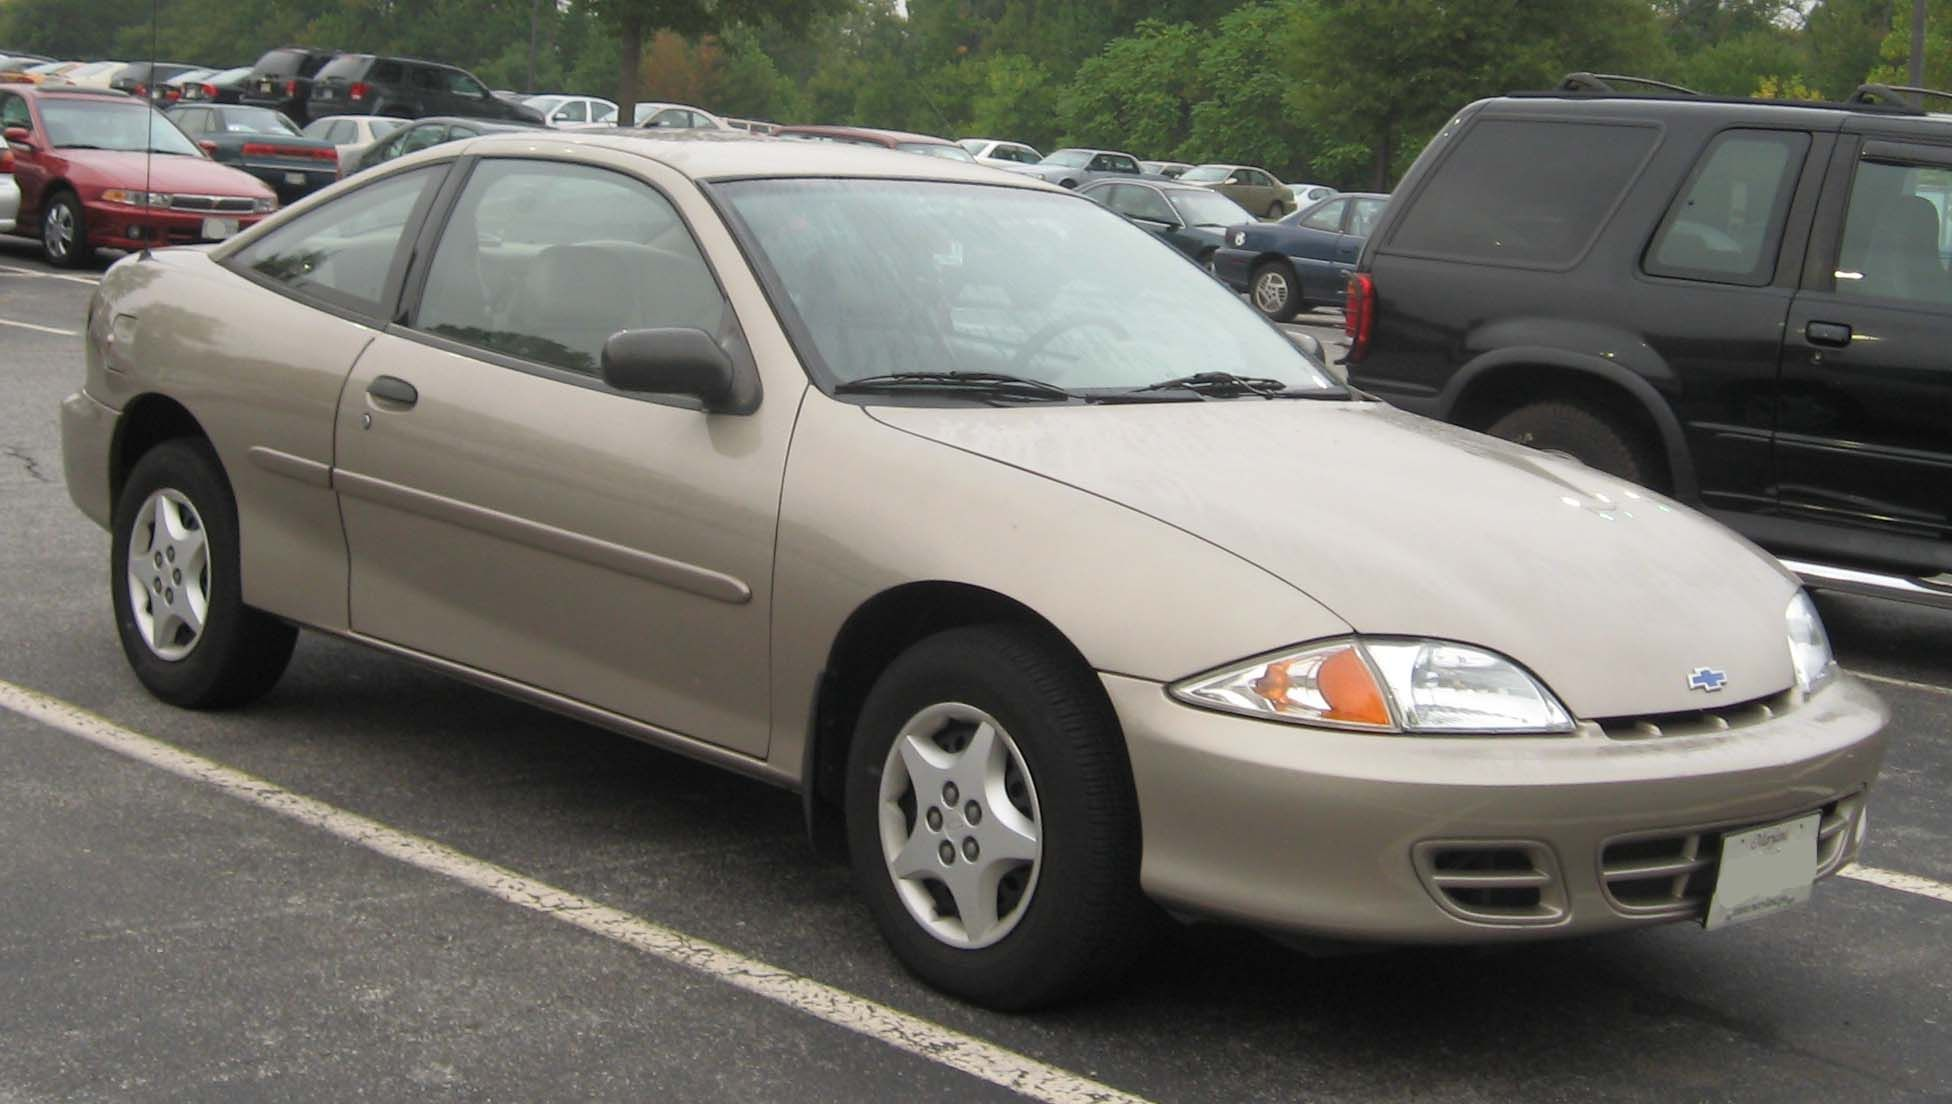 medium resolution of 2000 chevy cavalier first vehicle i owned i actually had to pay for mine looked like this but had an uber sporty tail fin on the back